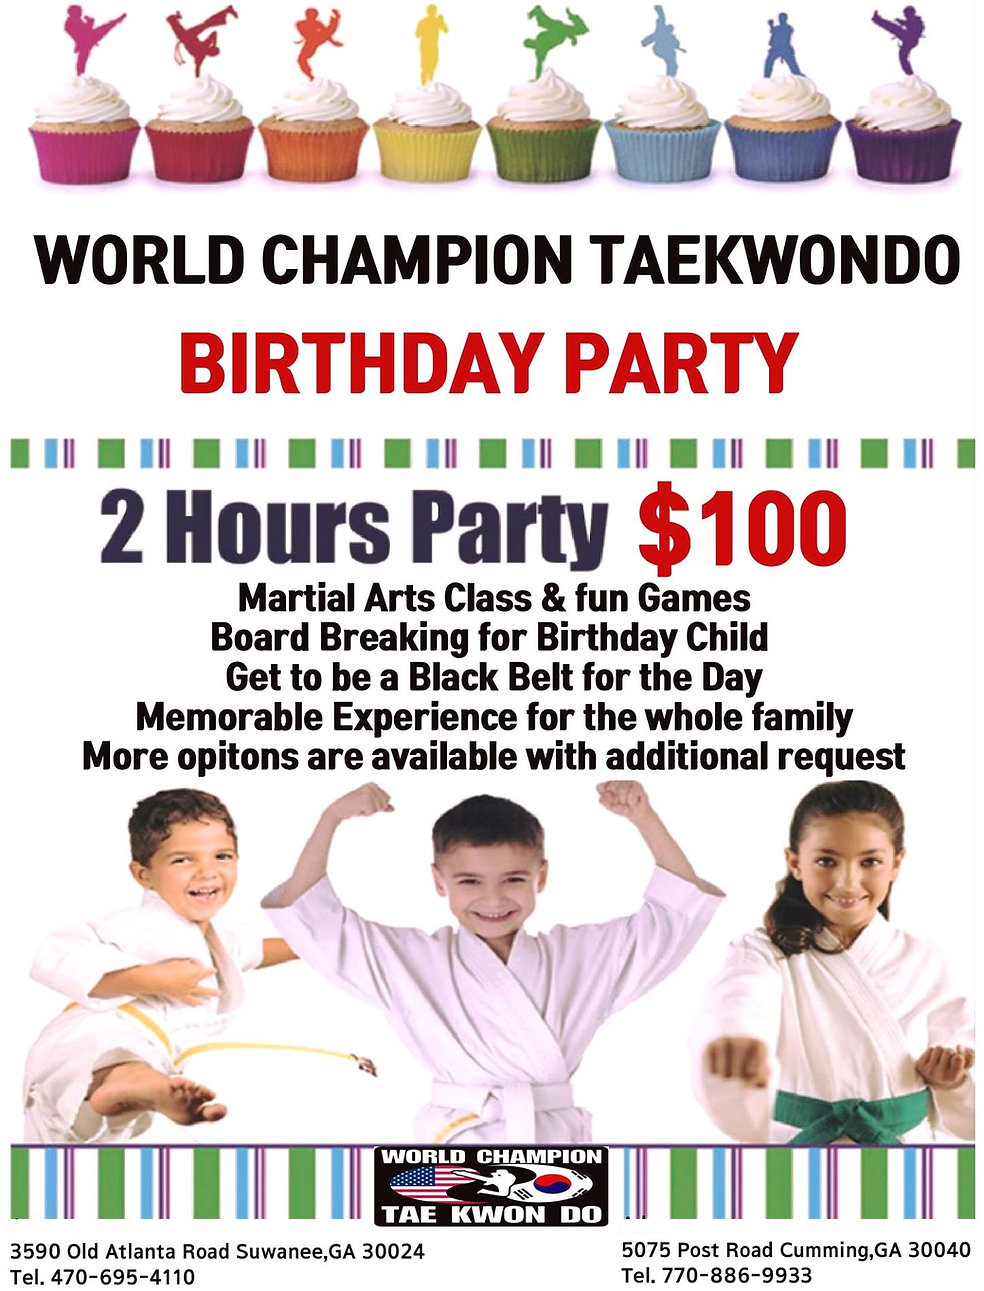 Birthday Party Poster.jpg